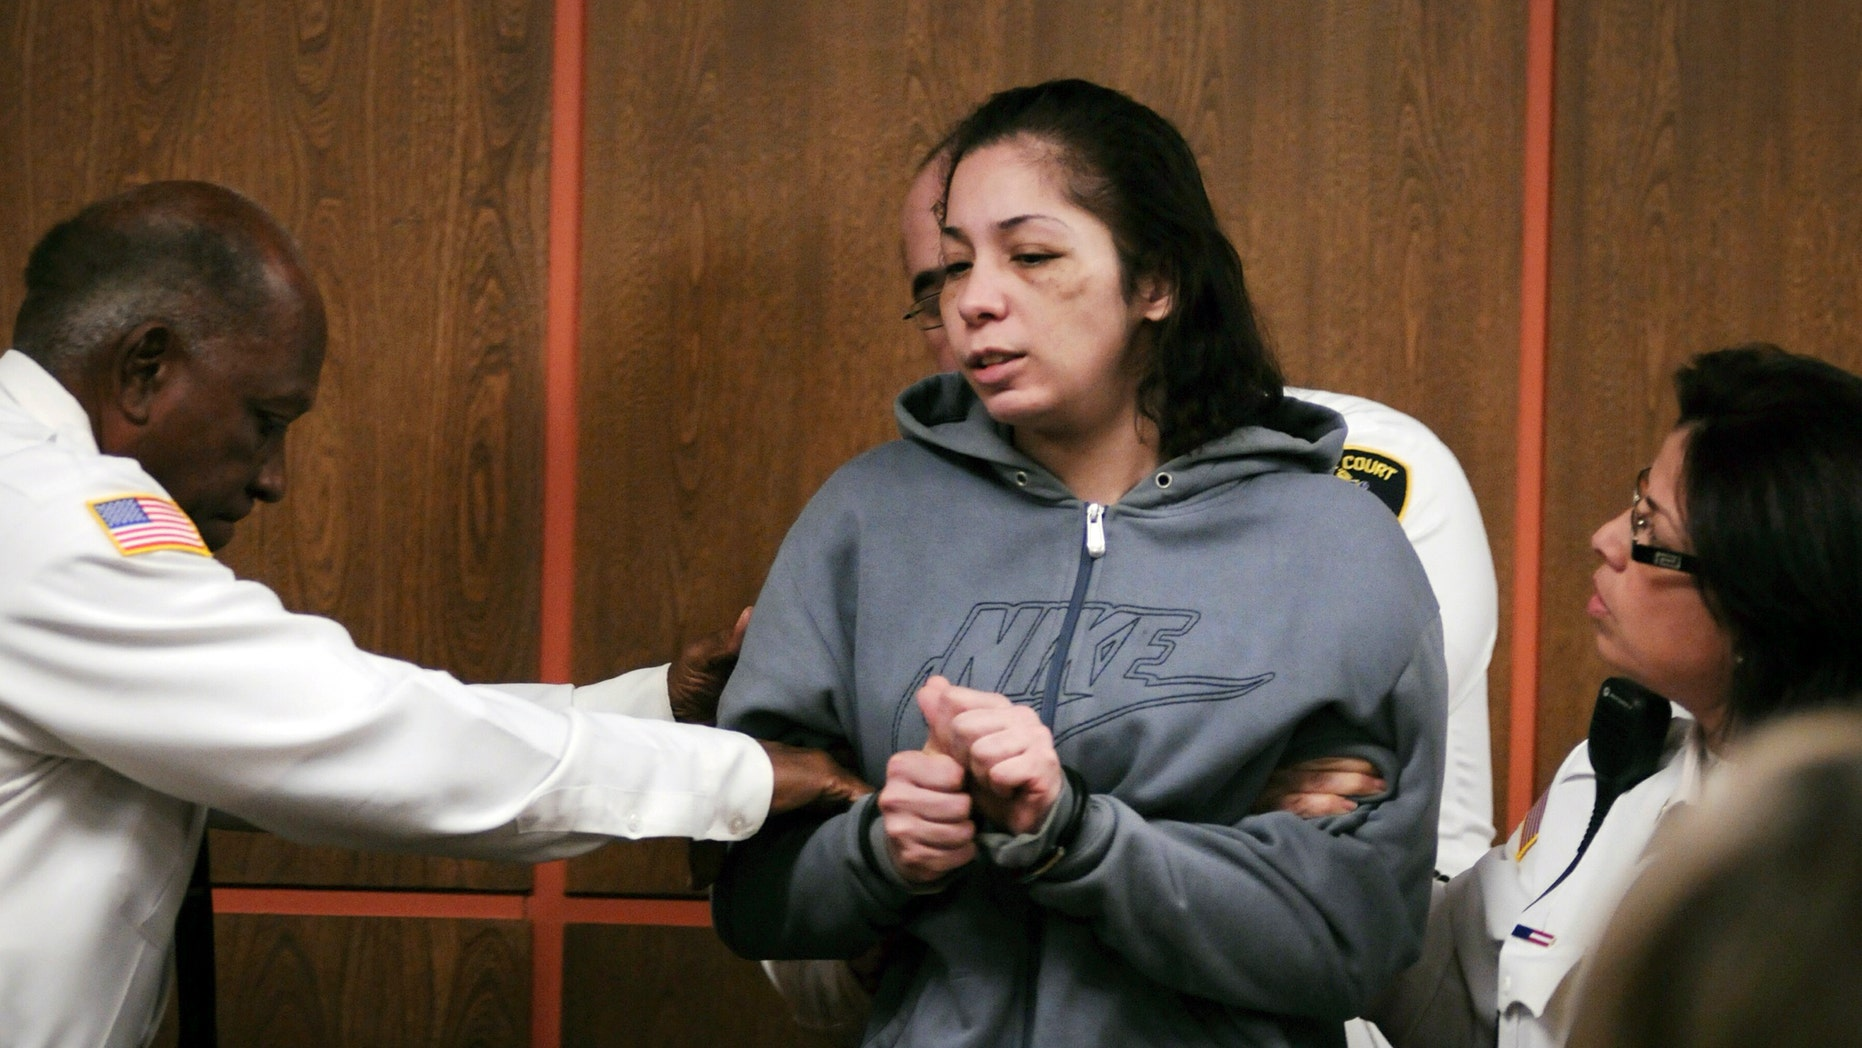 Elsa Oliver is escorted into the courtroom for her arraignment in Fitchburg District Court Tuesday, Dec. 17, 2013, in Fitchburg, Mass., on on charges of reckless endangerment of a child and accessory after the fact of assault, in regards to her missing 5-year-old son, Jeremiah Oliver. (AP Photo/Worcester Telegram & Gazette, Rick Cinclair, Pool)